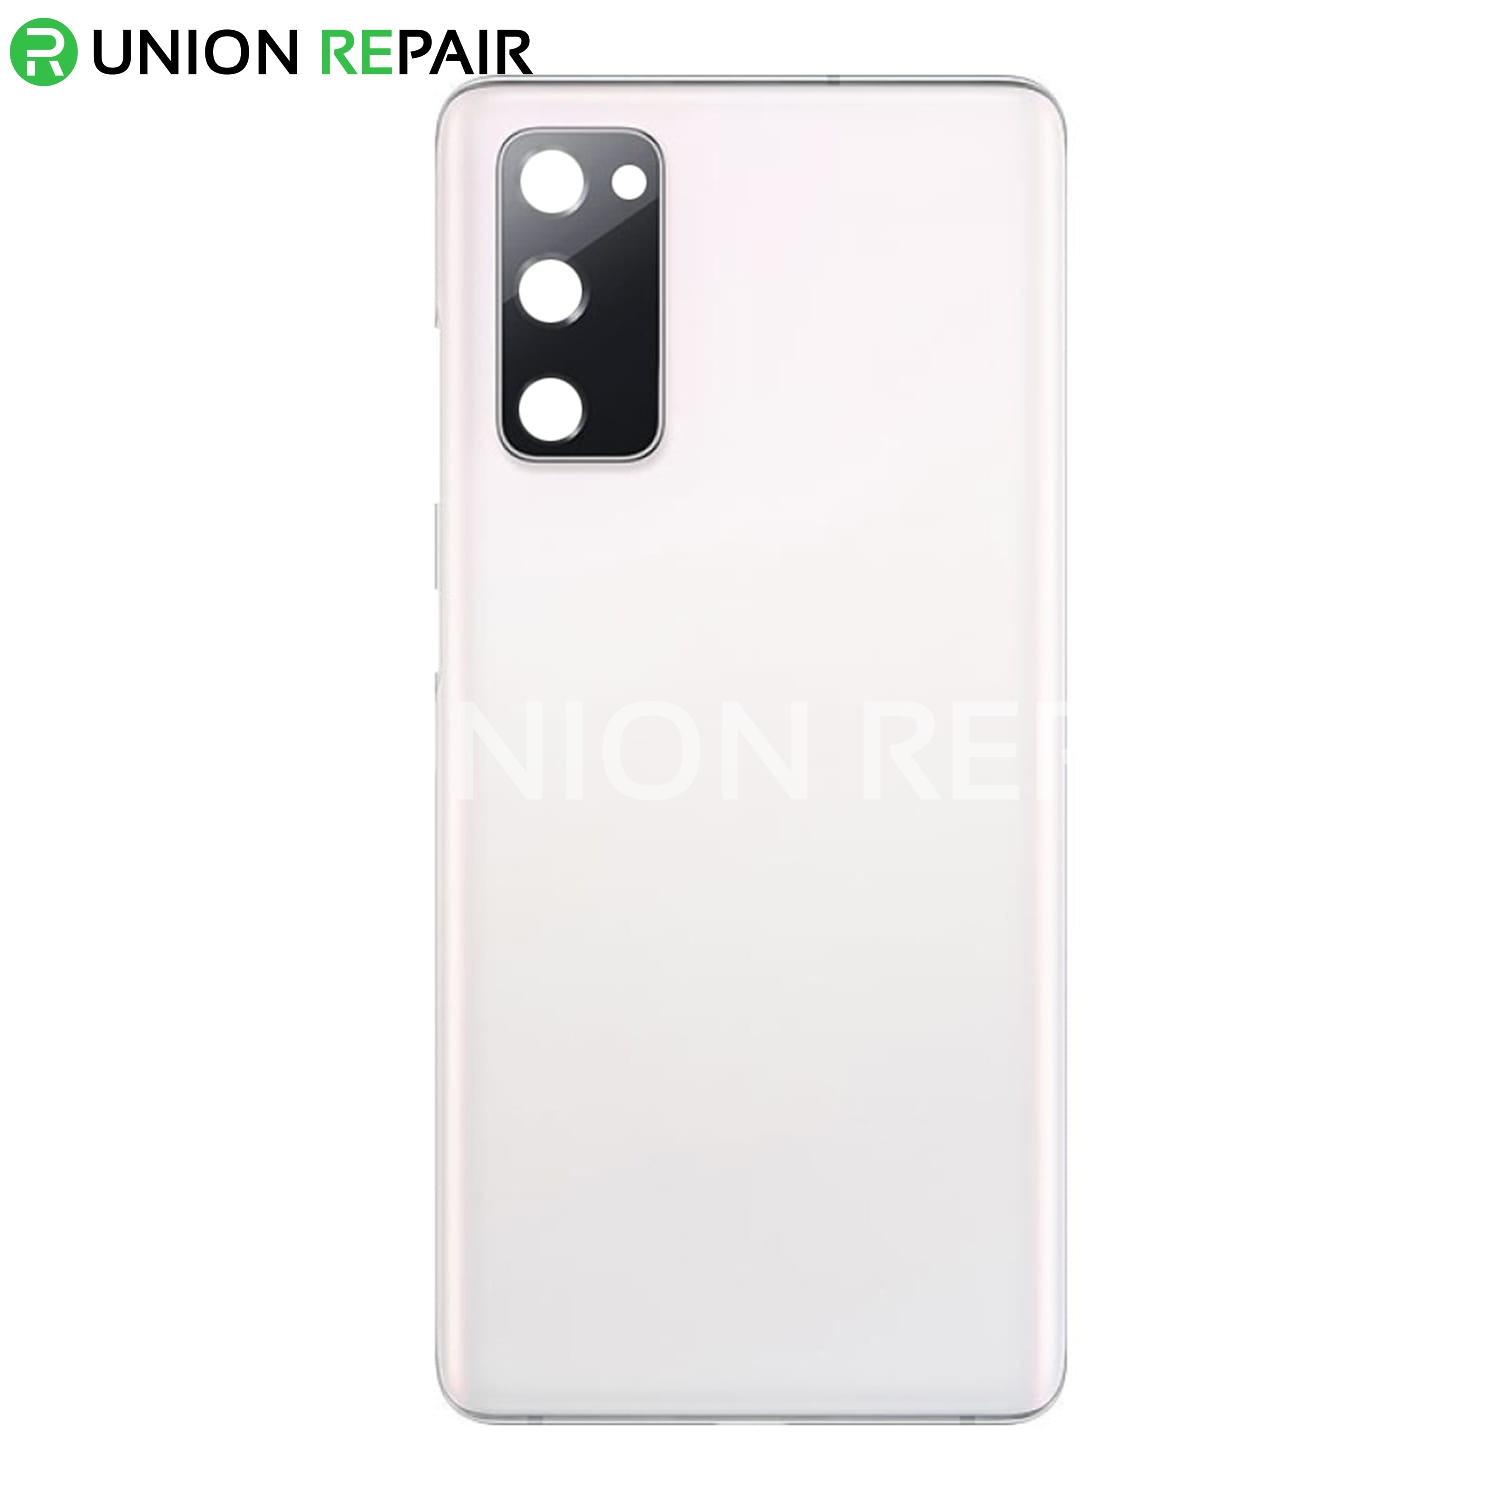 Replacement for Samsung Galaxy S20 FE 5G Battery Door - Cloud White